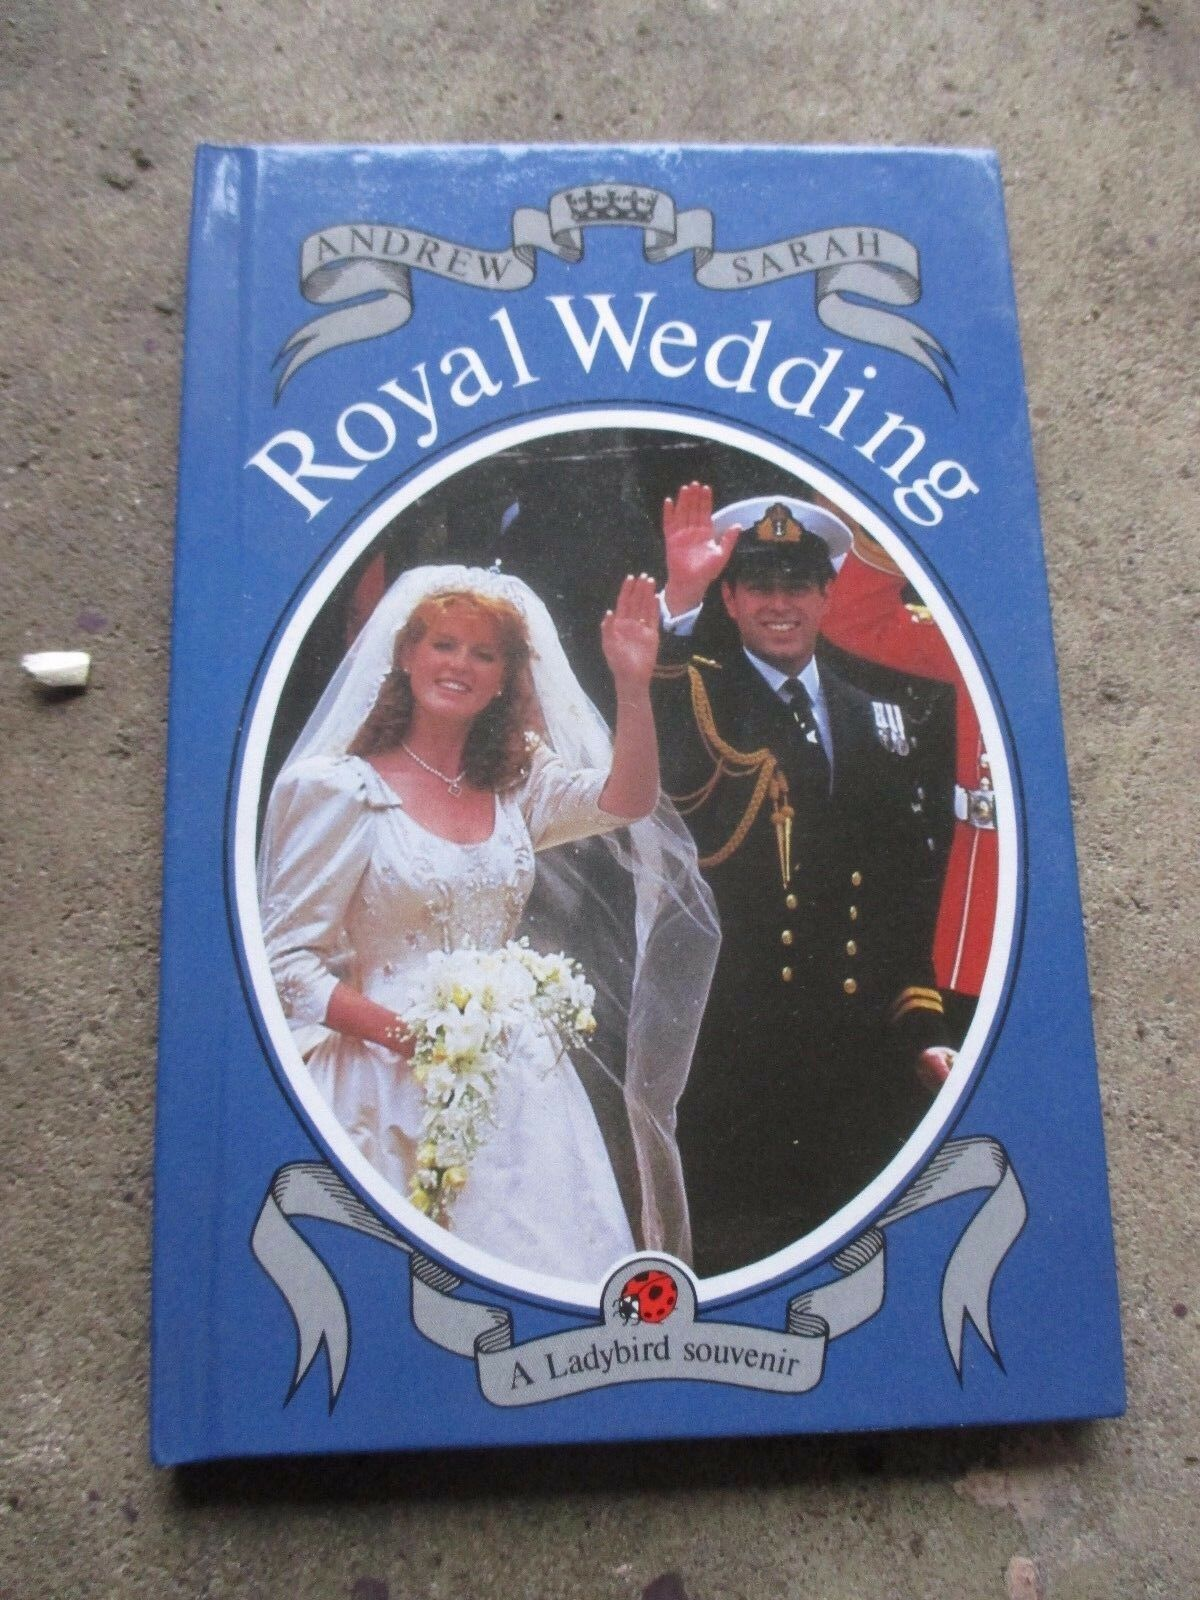 ANDREW and SARAH ROYAL WEDDING BOOK A LADYBIRD SOUVENIR